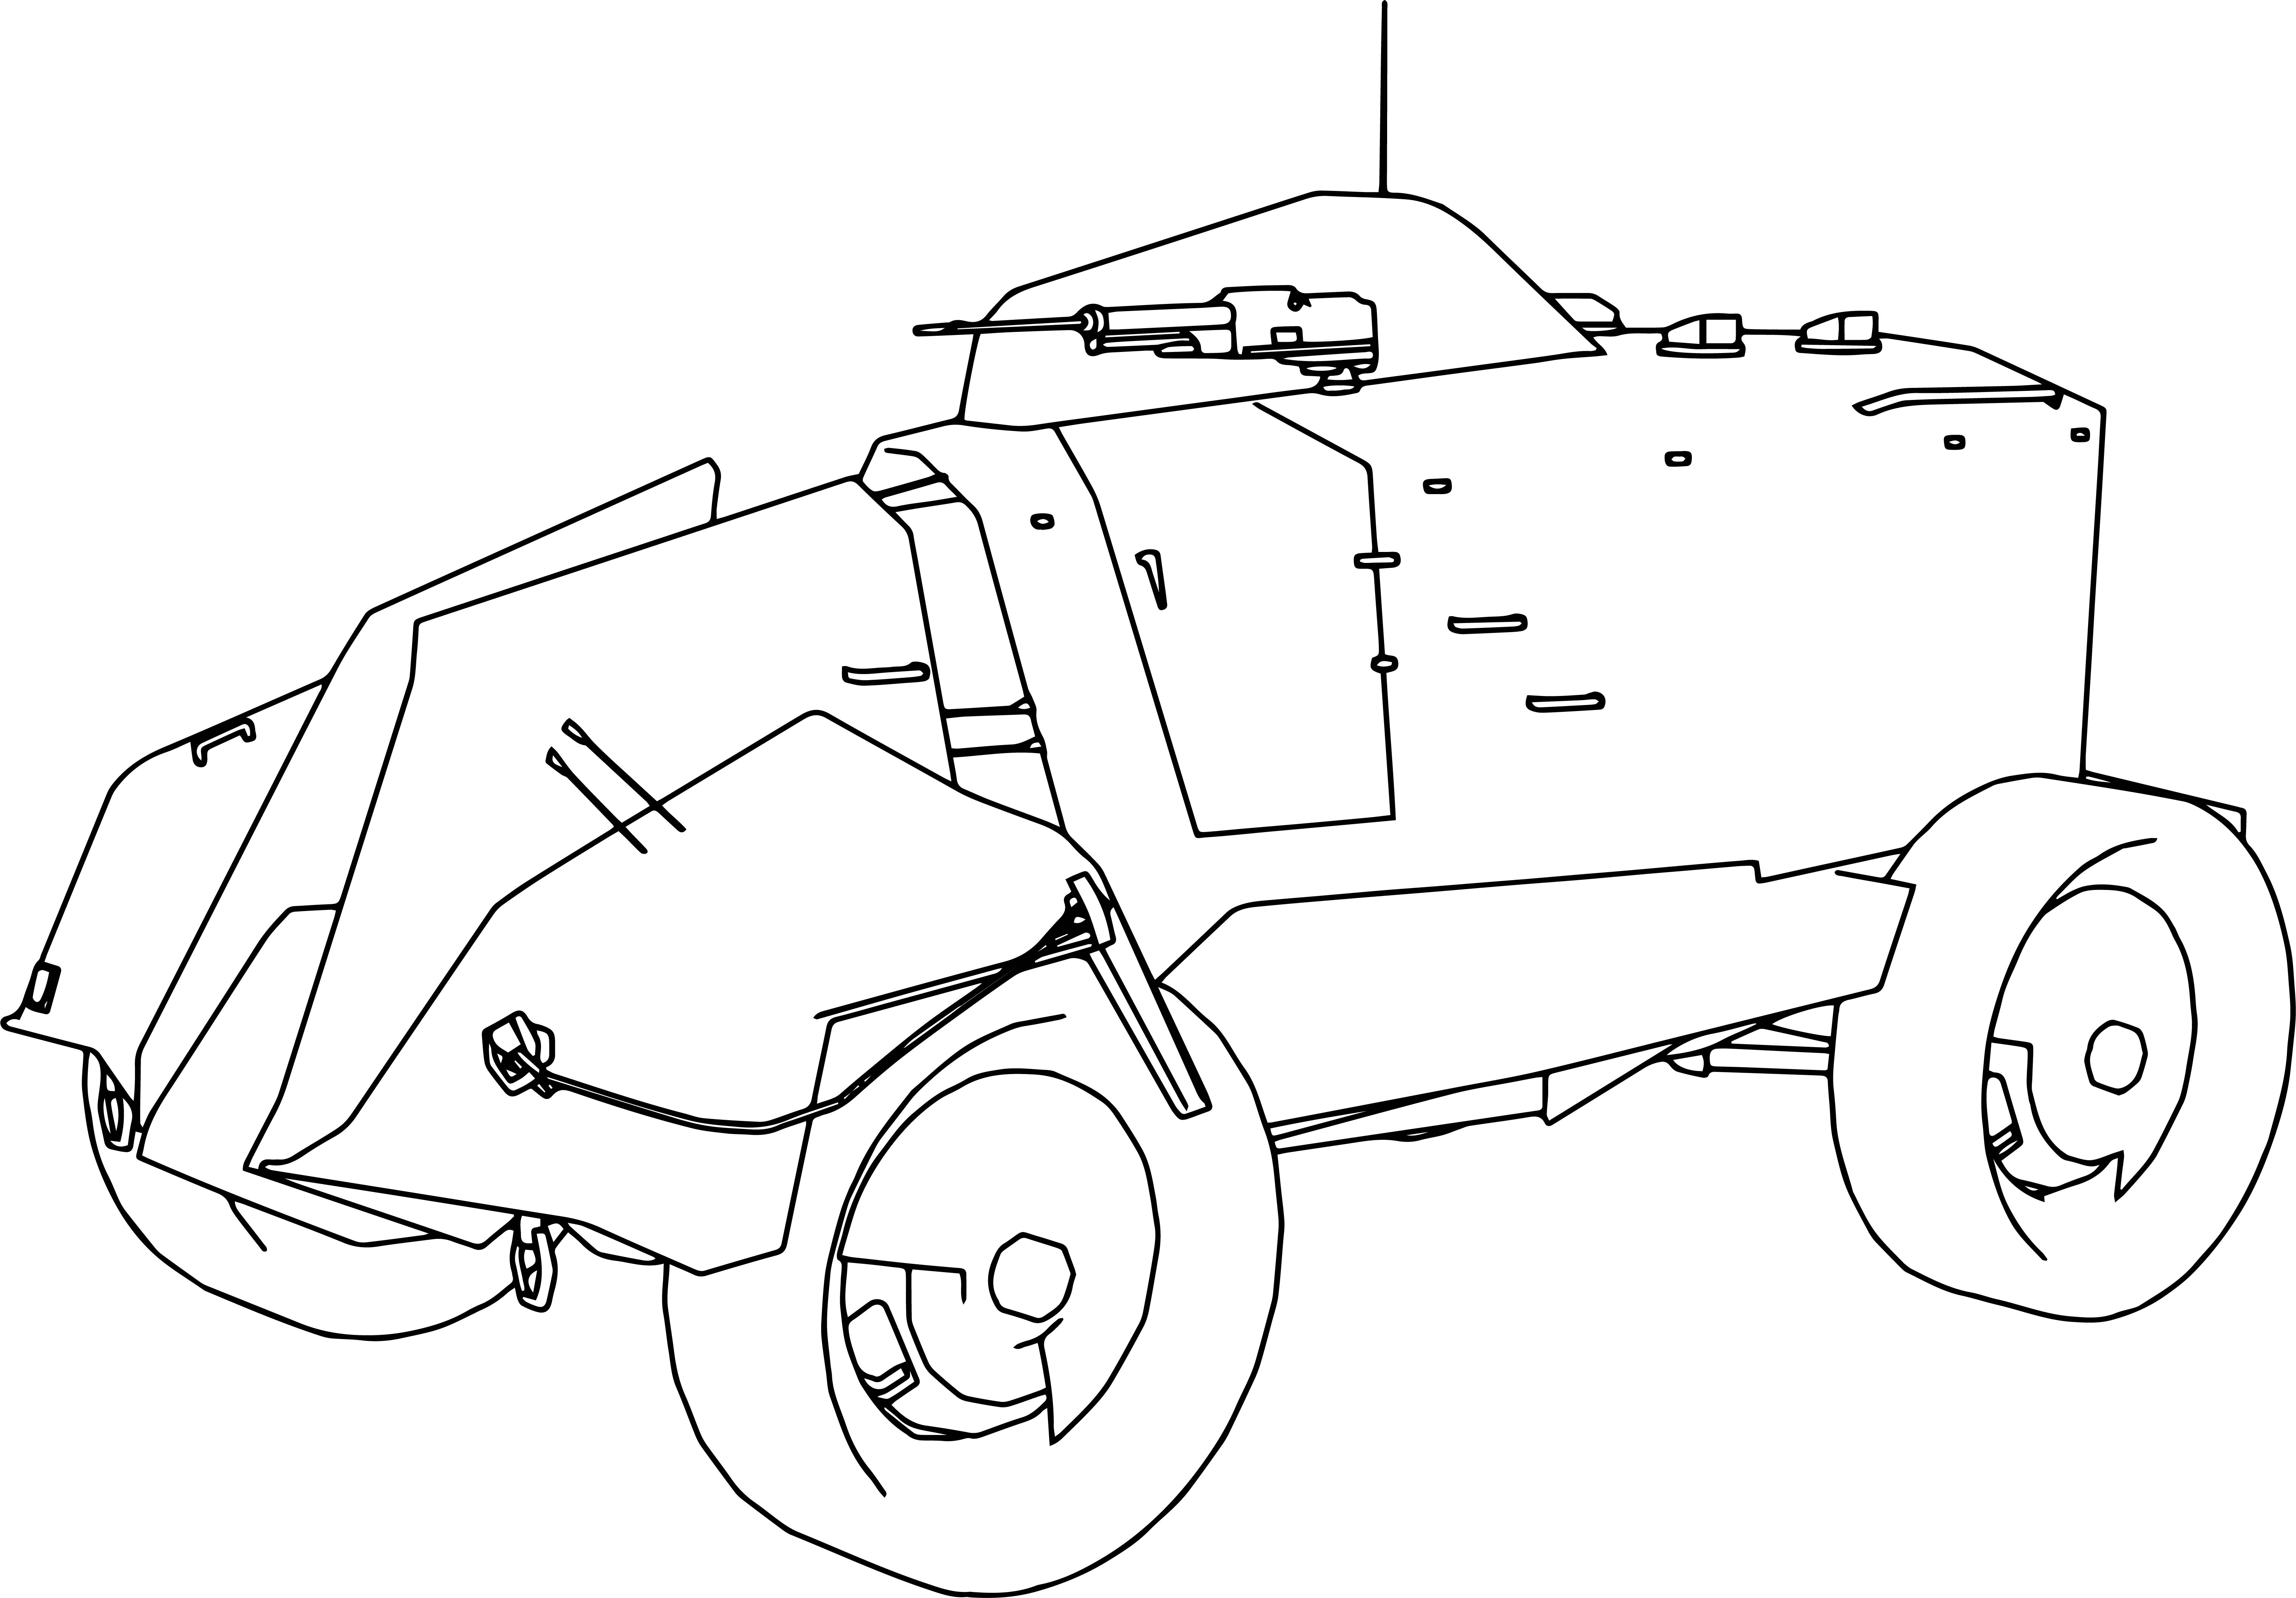 Combine Apc Coloring Page